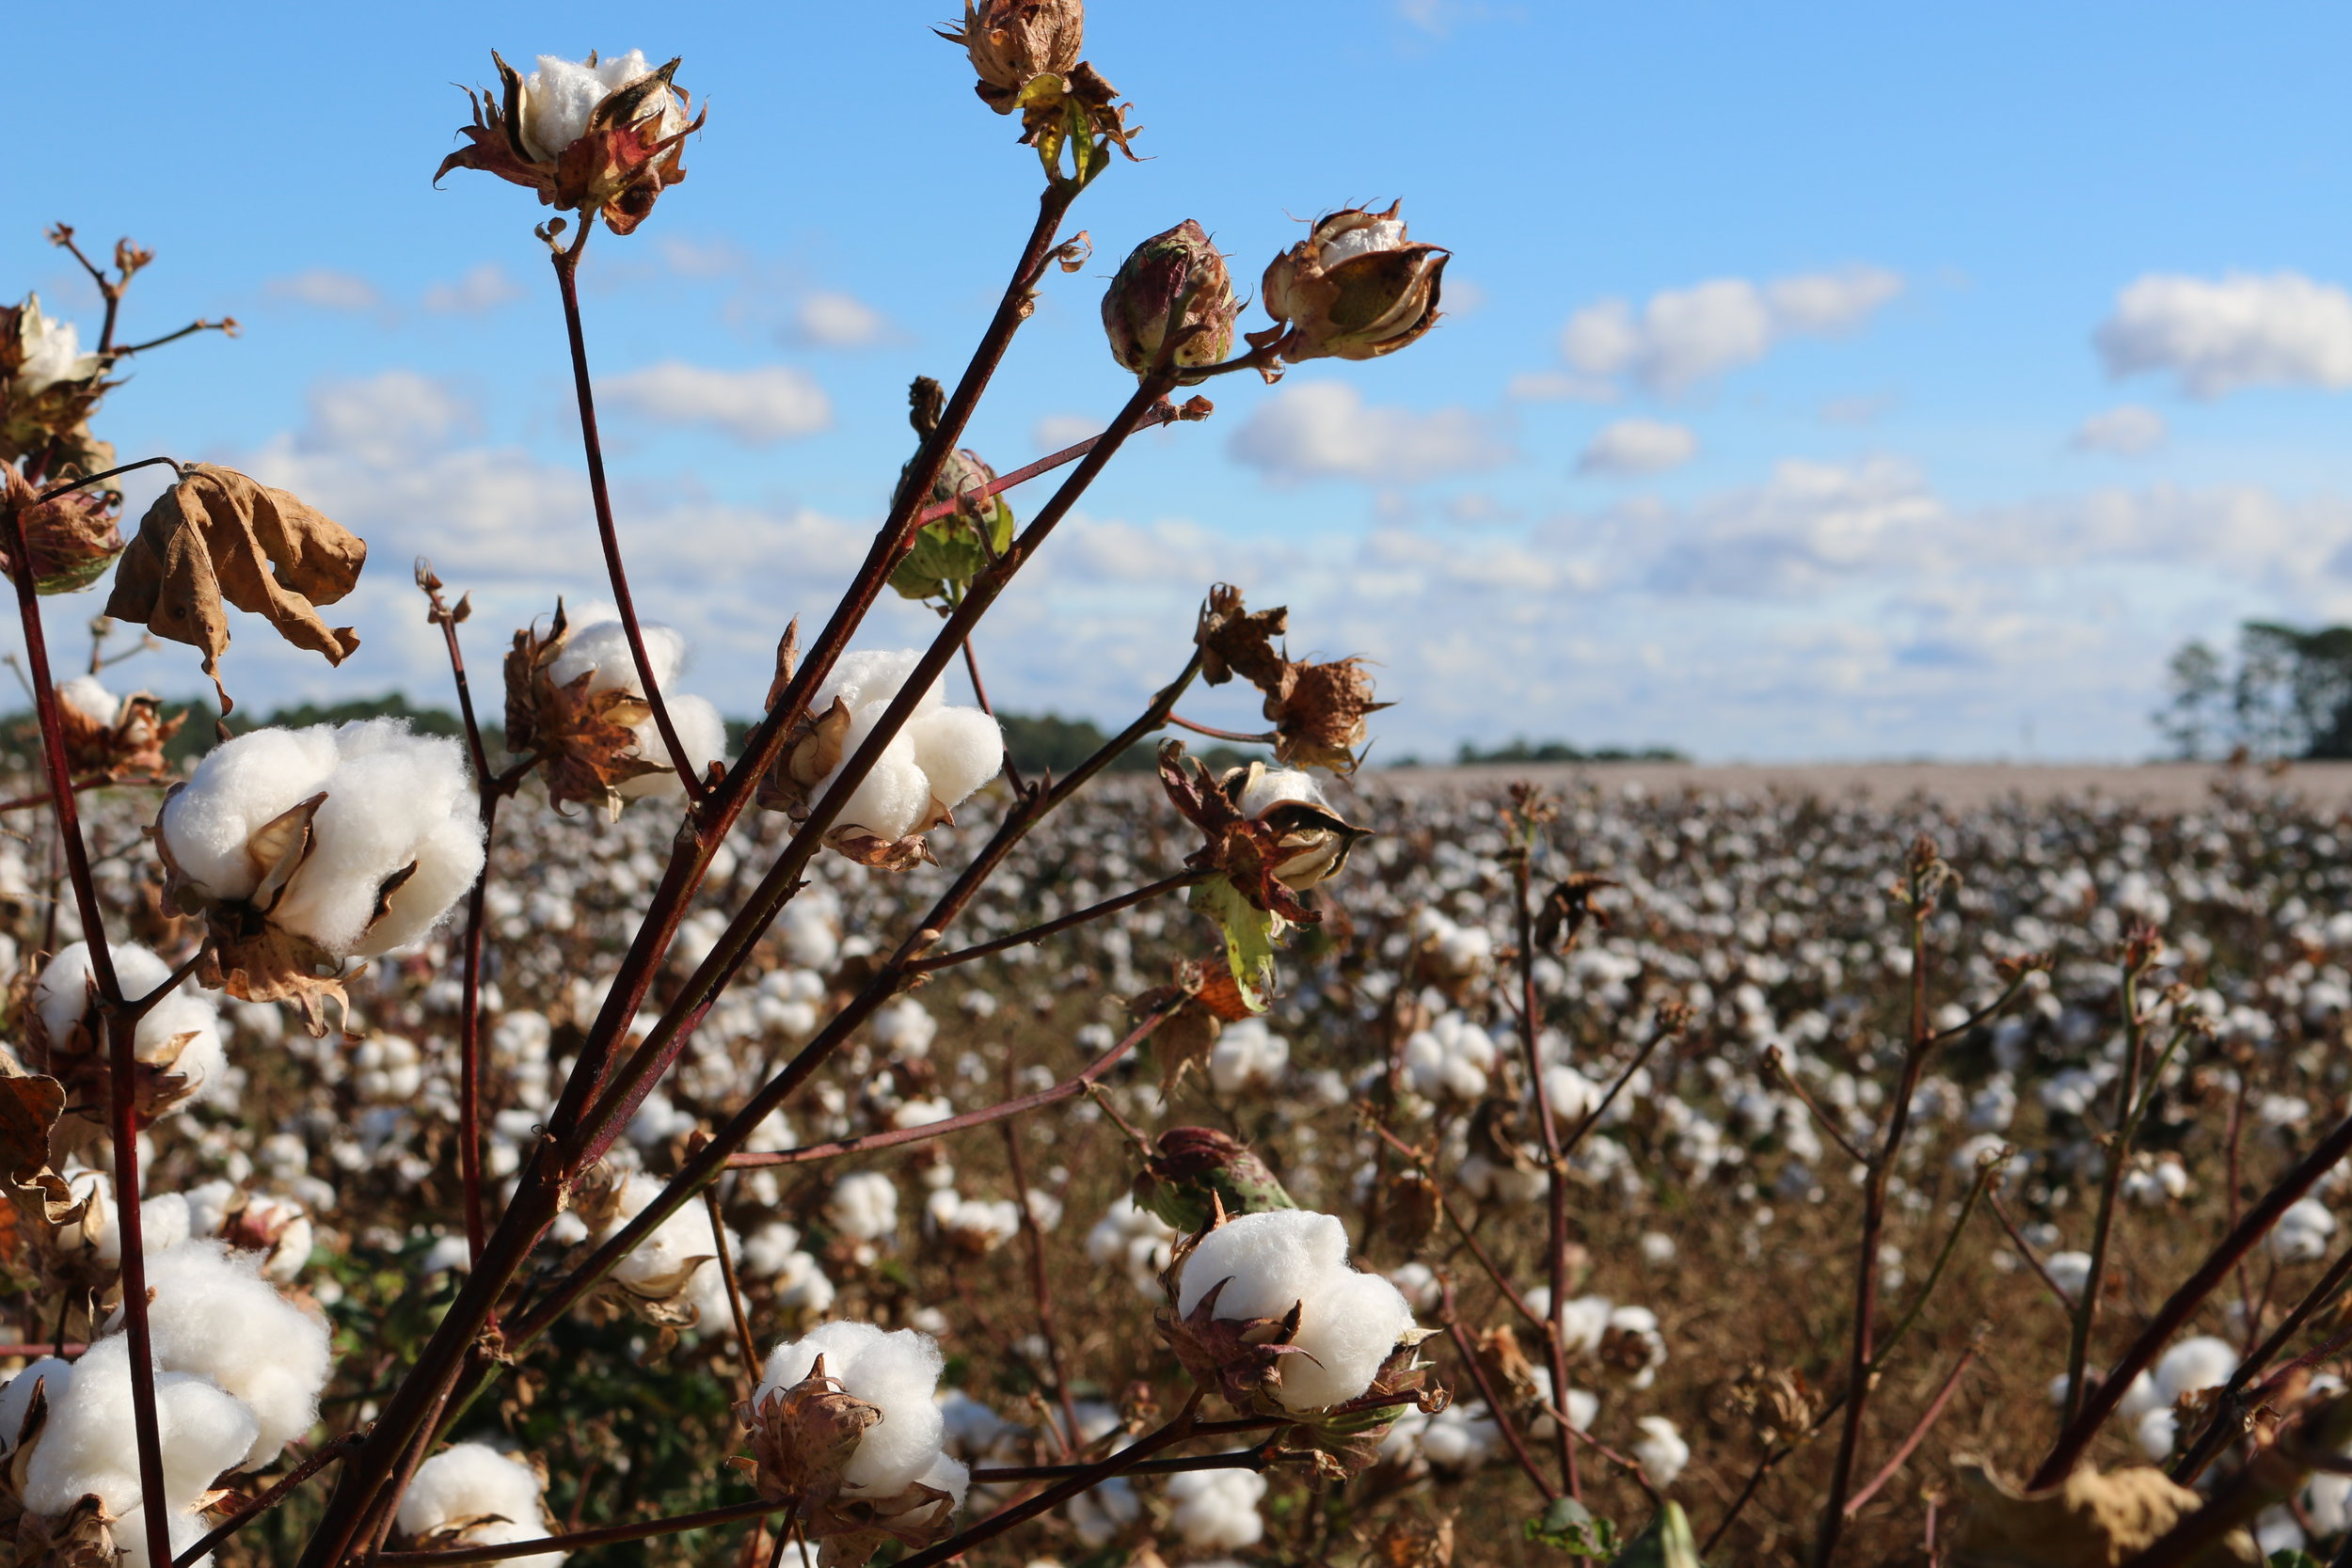 2. Harvesting - Organic upland and pima cotton is either picked mechanically or manually where it is simply allowed to freeze to expedite the harvesting process. The cotton must be stored in strictly controlled conditions to avoid the development of fungus, causing significant reductions in cotton quality. Chemical harvesting is prohibited under the NOP standard.